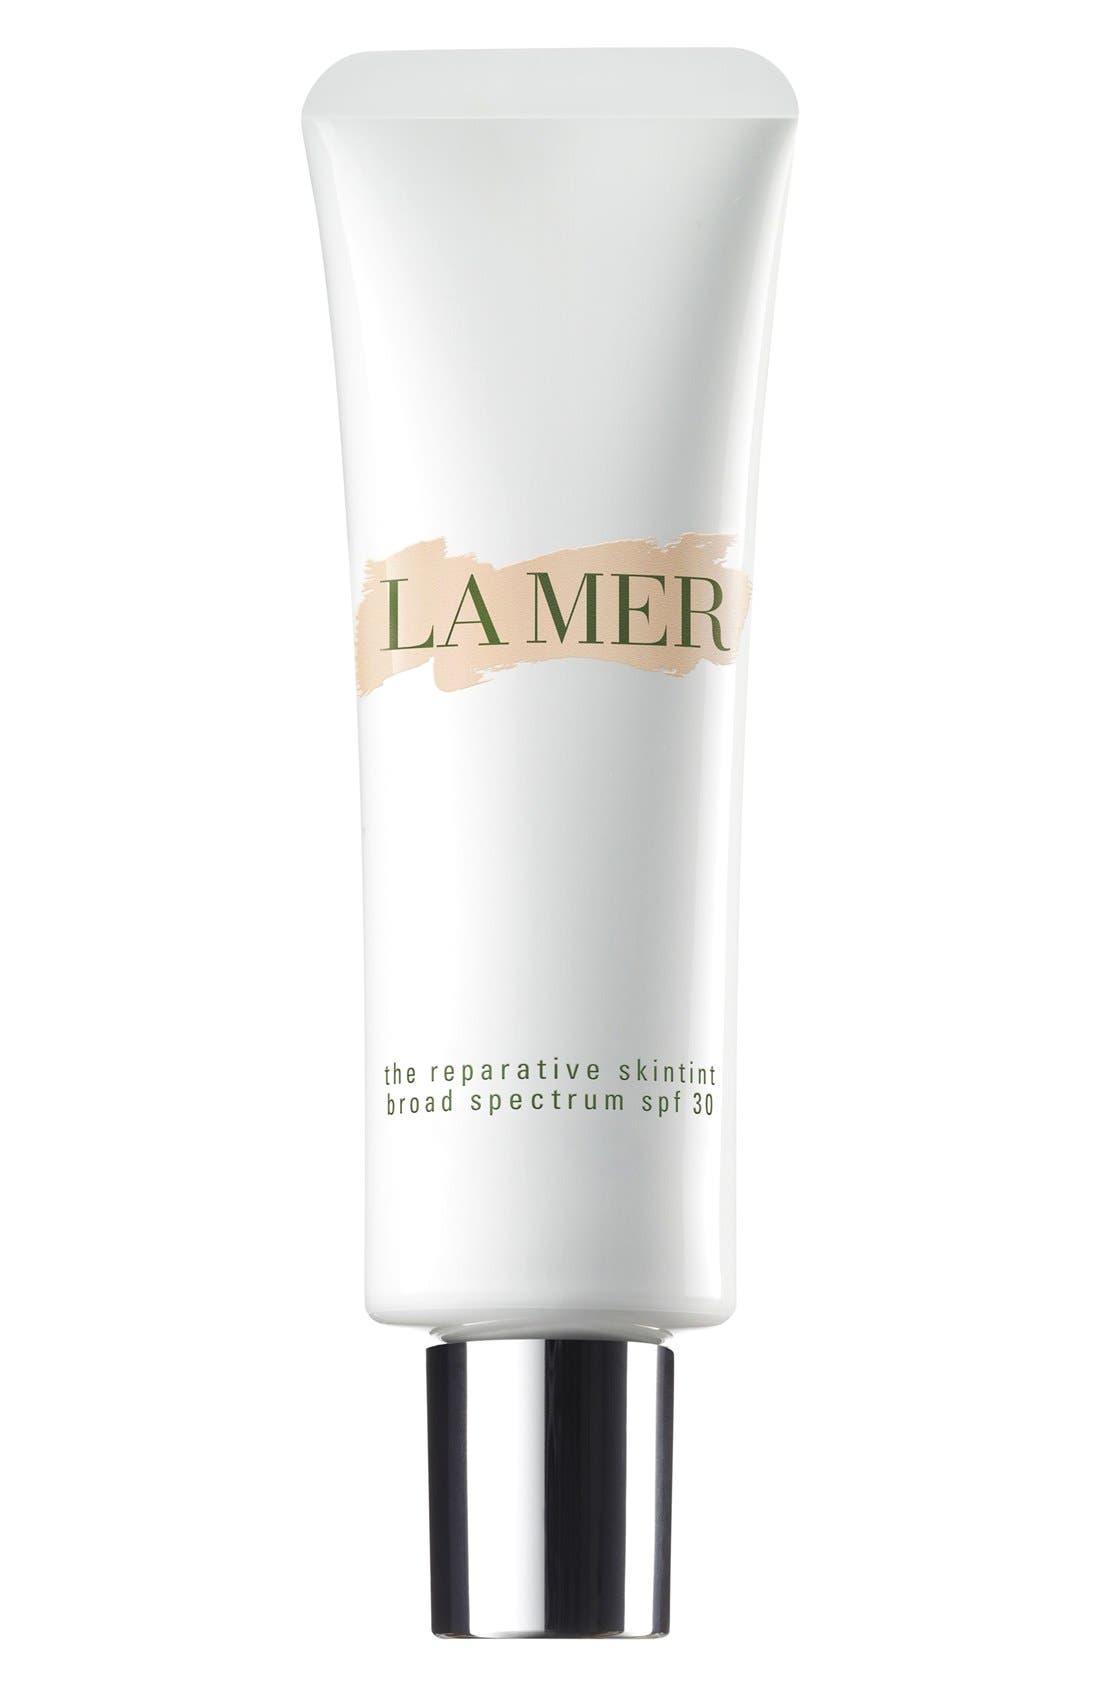 La Mer 'The Reparative SkinTint' Broad Spectrum SPF 30